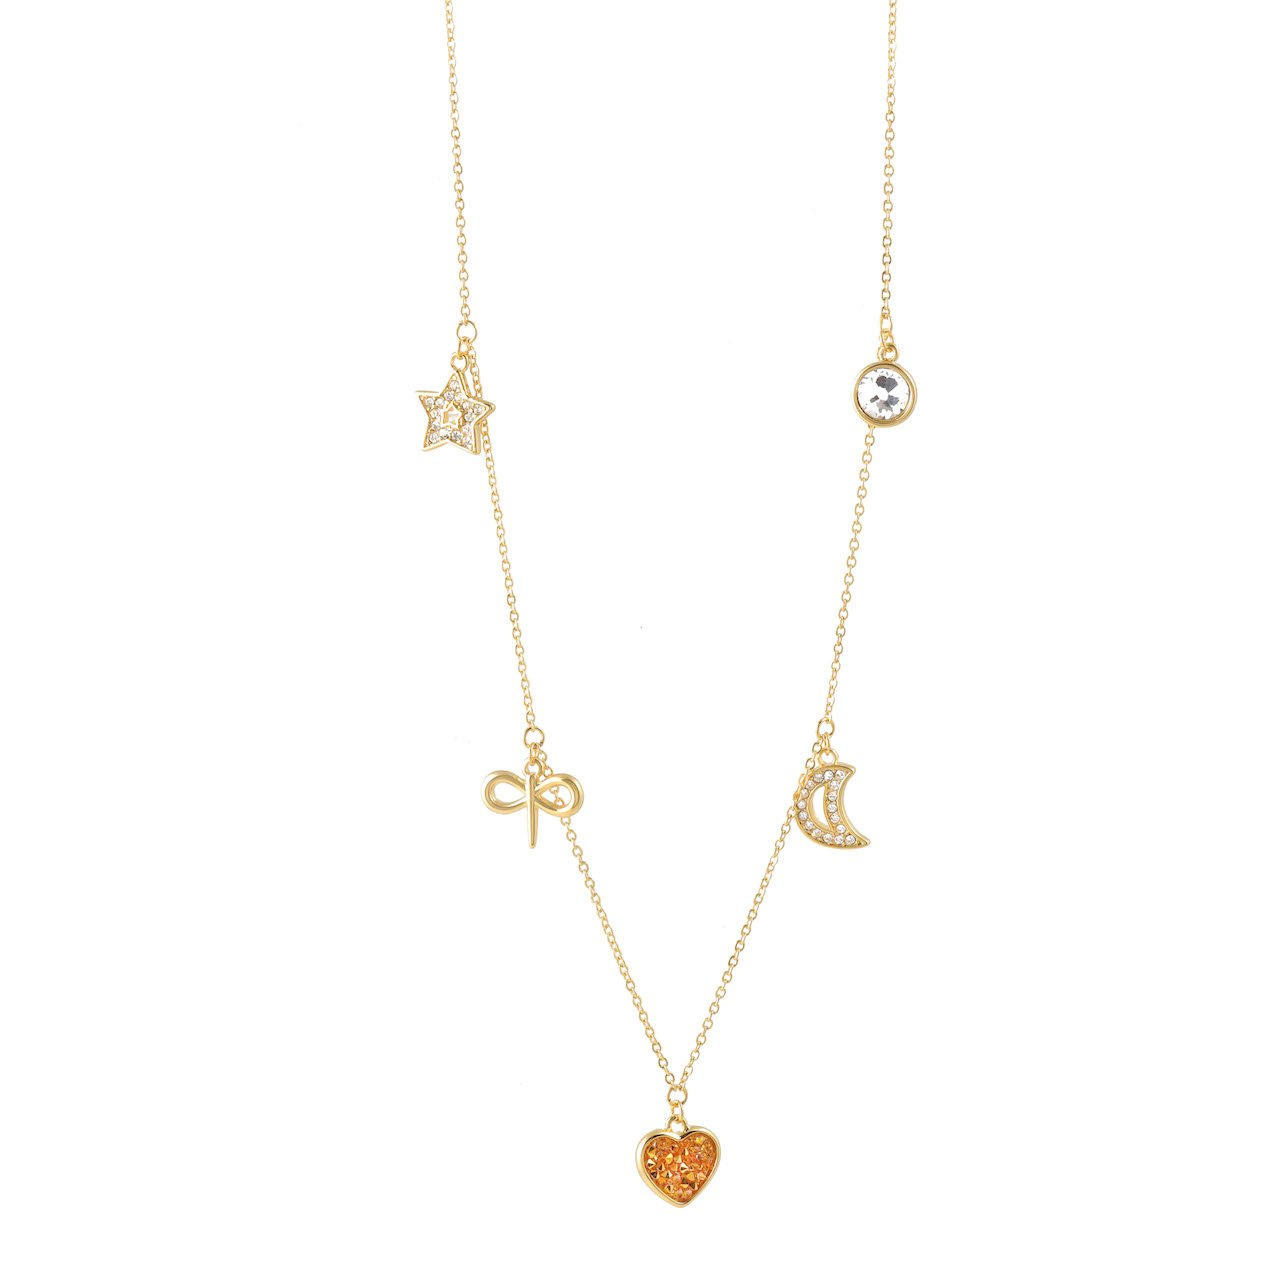 Celebrating Women 2021 Charm Necklace Gold